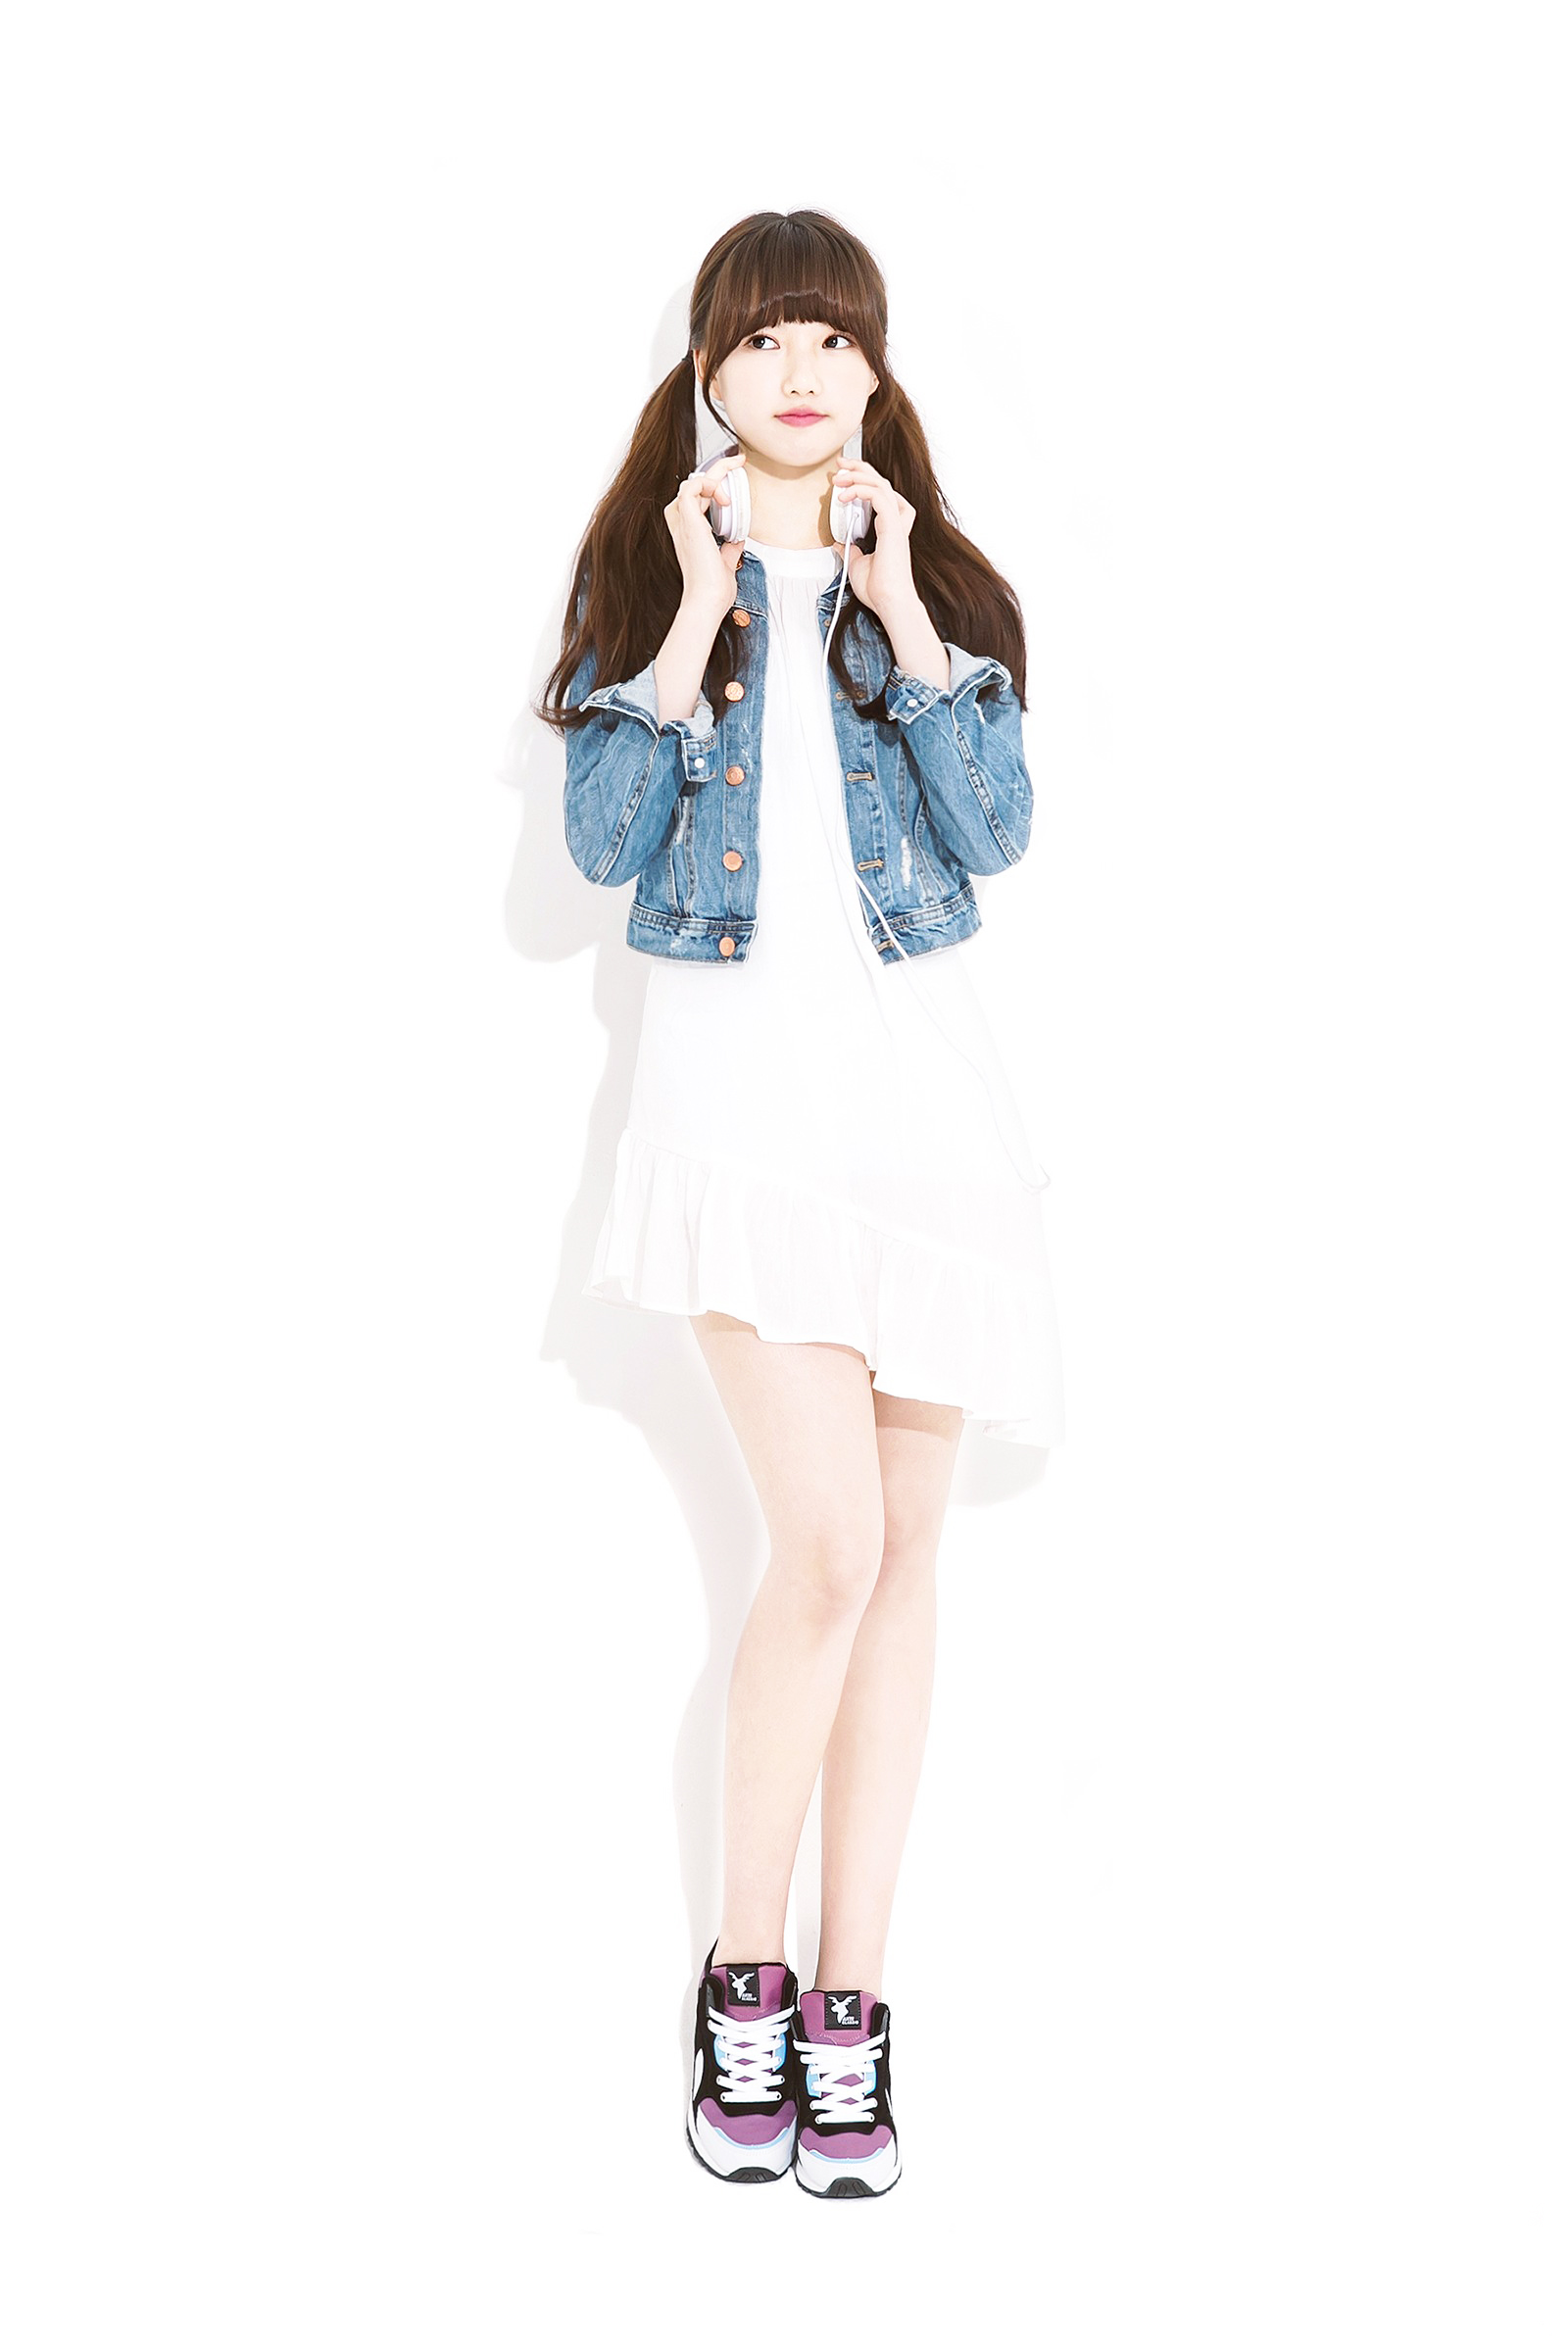 GFriend for AKIII Classic Spring 2015